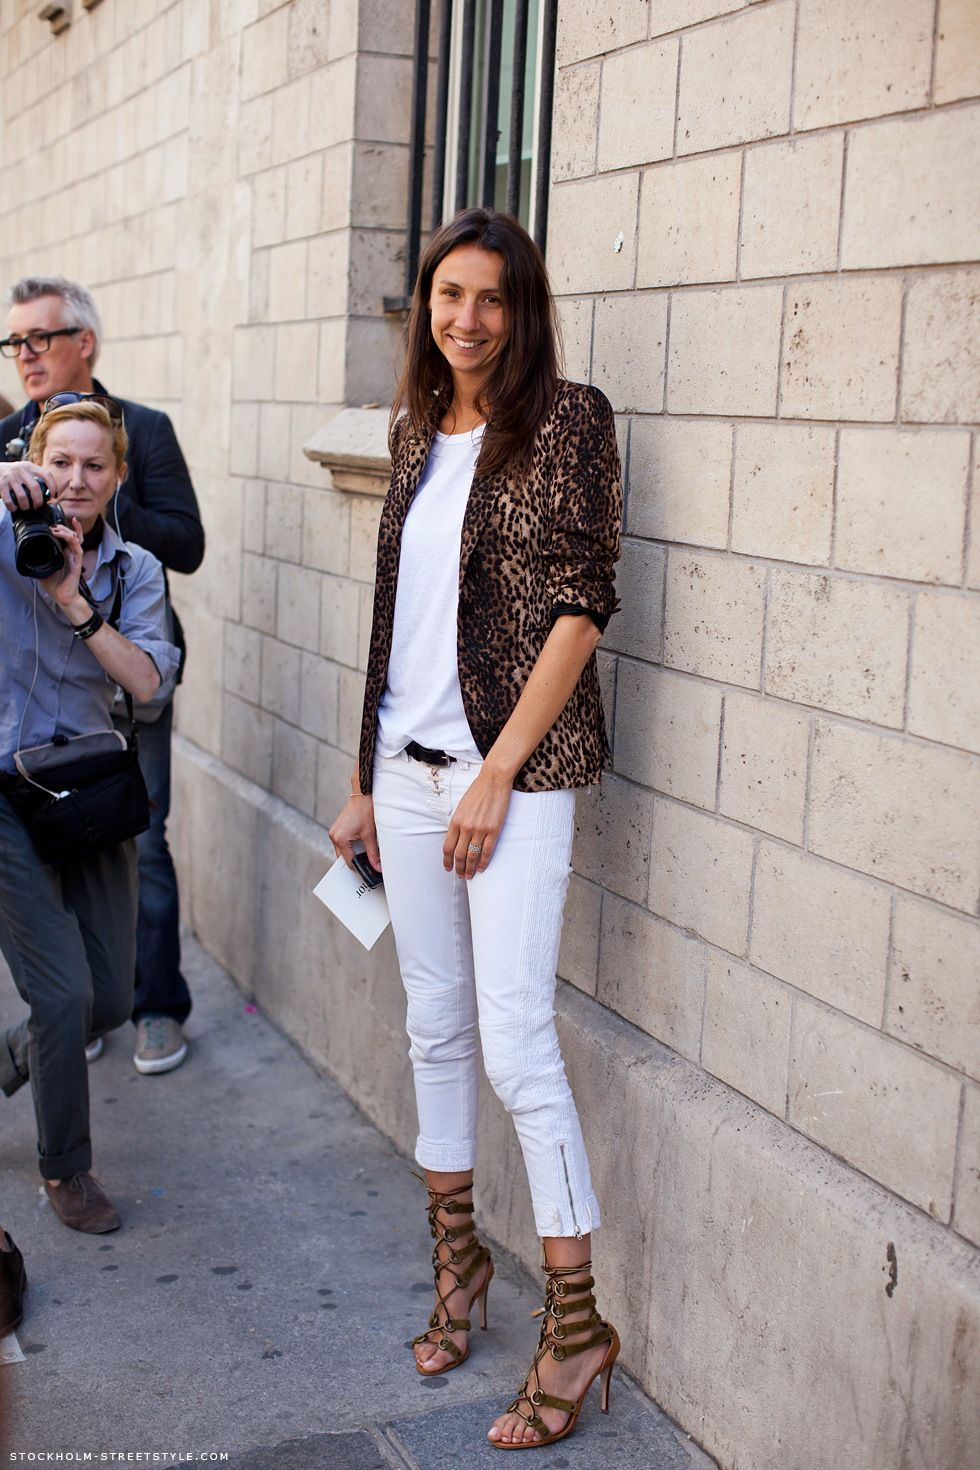 Total White Outfit with Leopard Animal Print Jacket and Gladiator Sandals - Spring/Summer Style -  #fashion #outfit